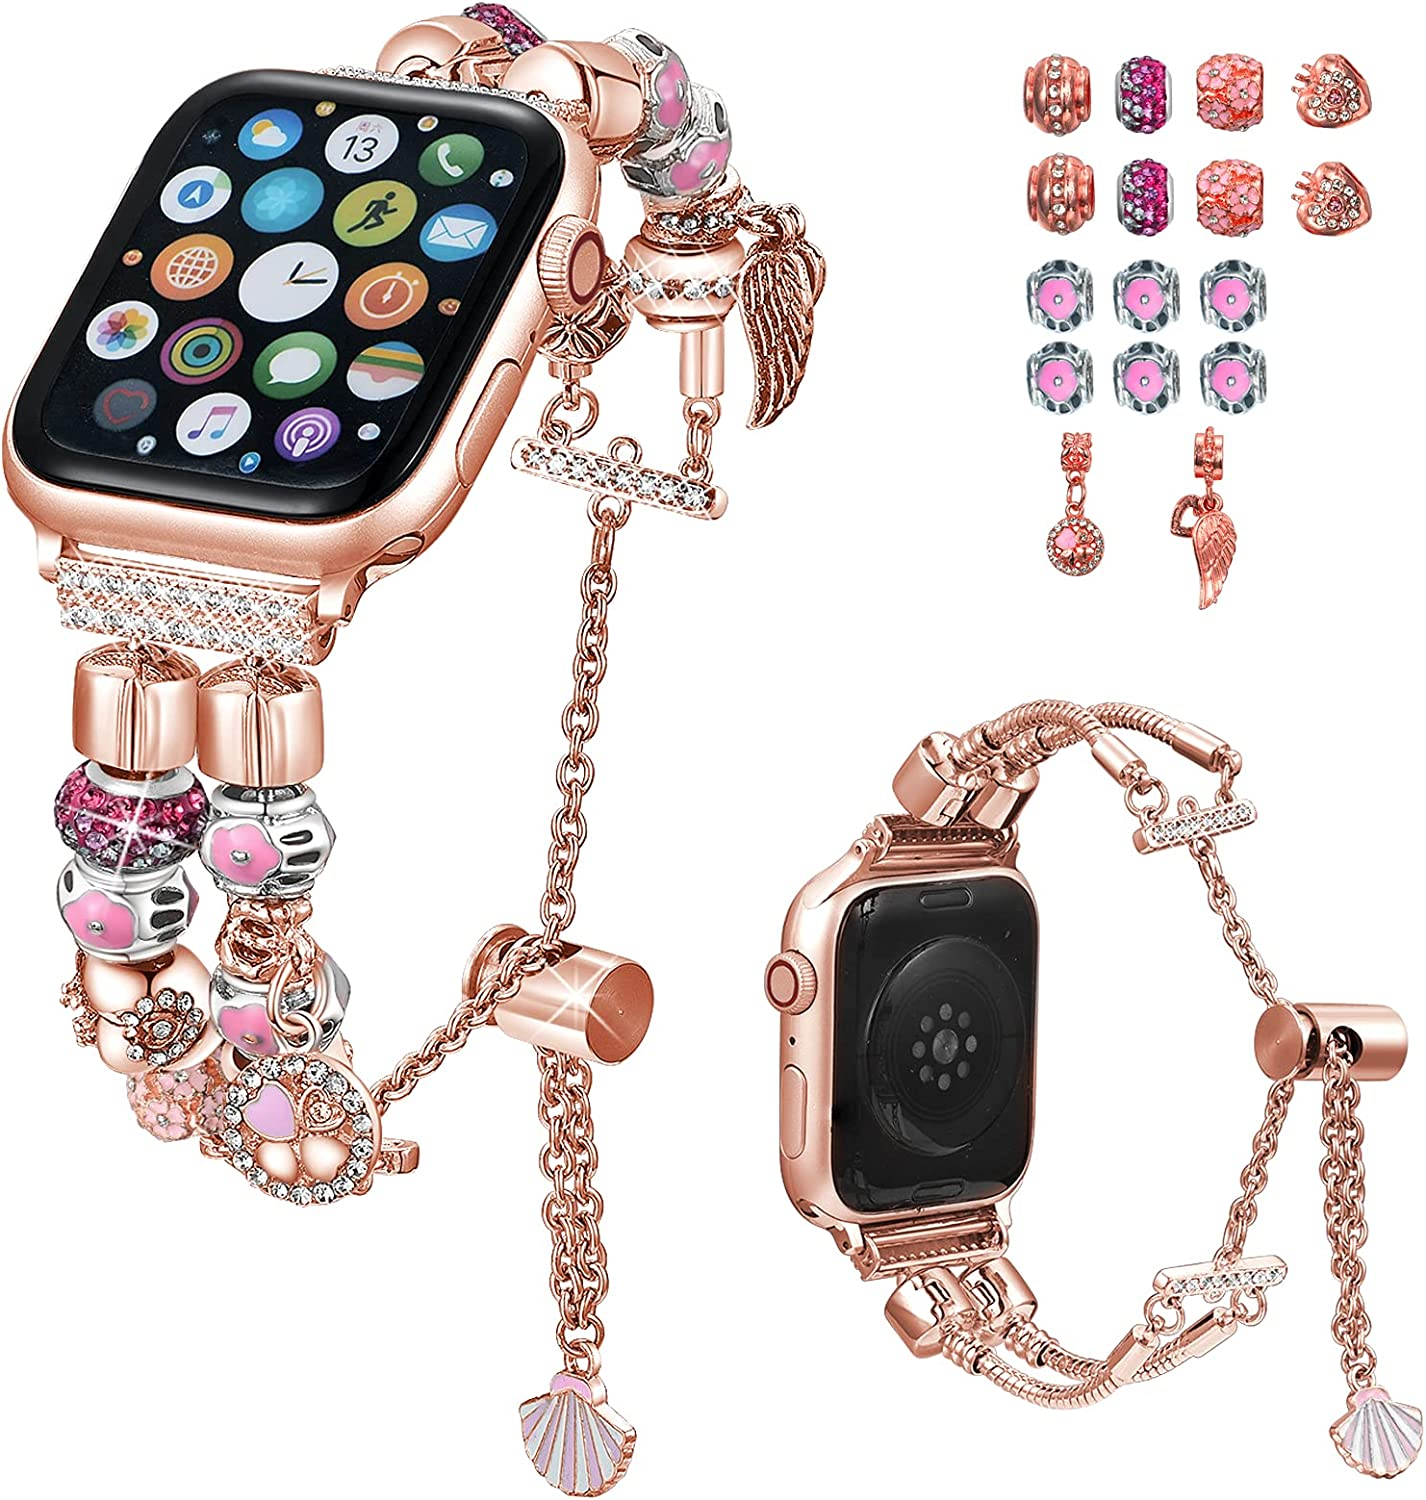 KoudHug DIY Bands Compatible with Apple Watch Bands 38mm 40mm iWatch SE Series 6/5/4/3/2/1, Interchangeable Charms Adjustable Stylish Bling Bracelet for Women